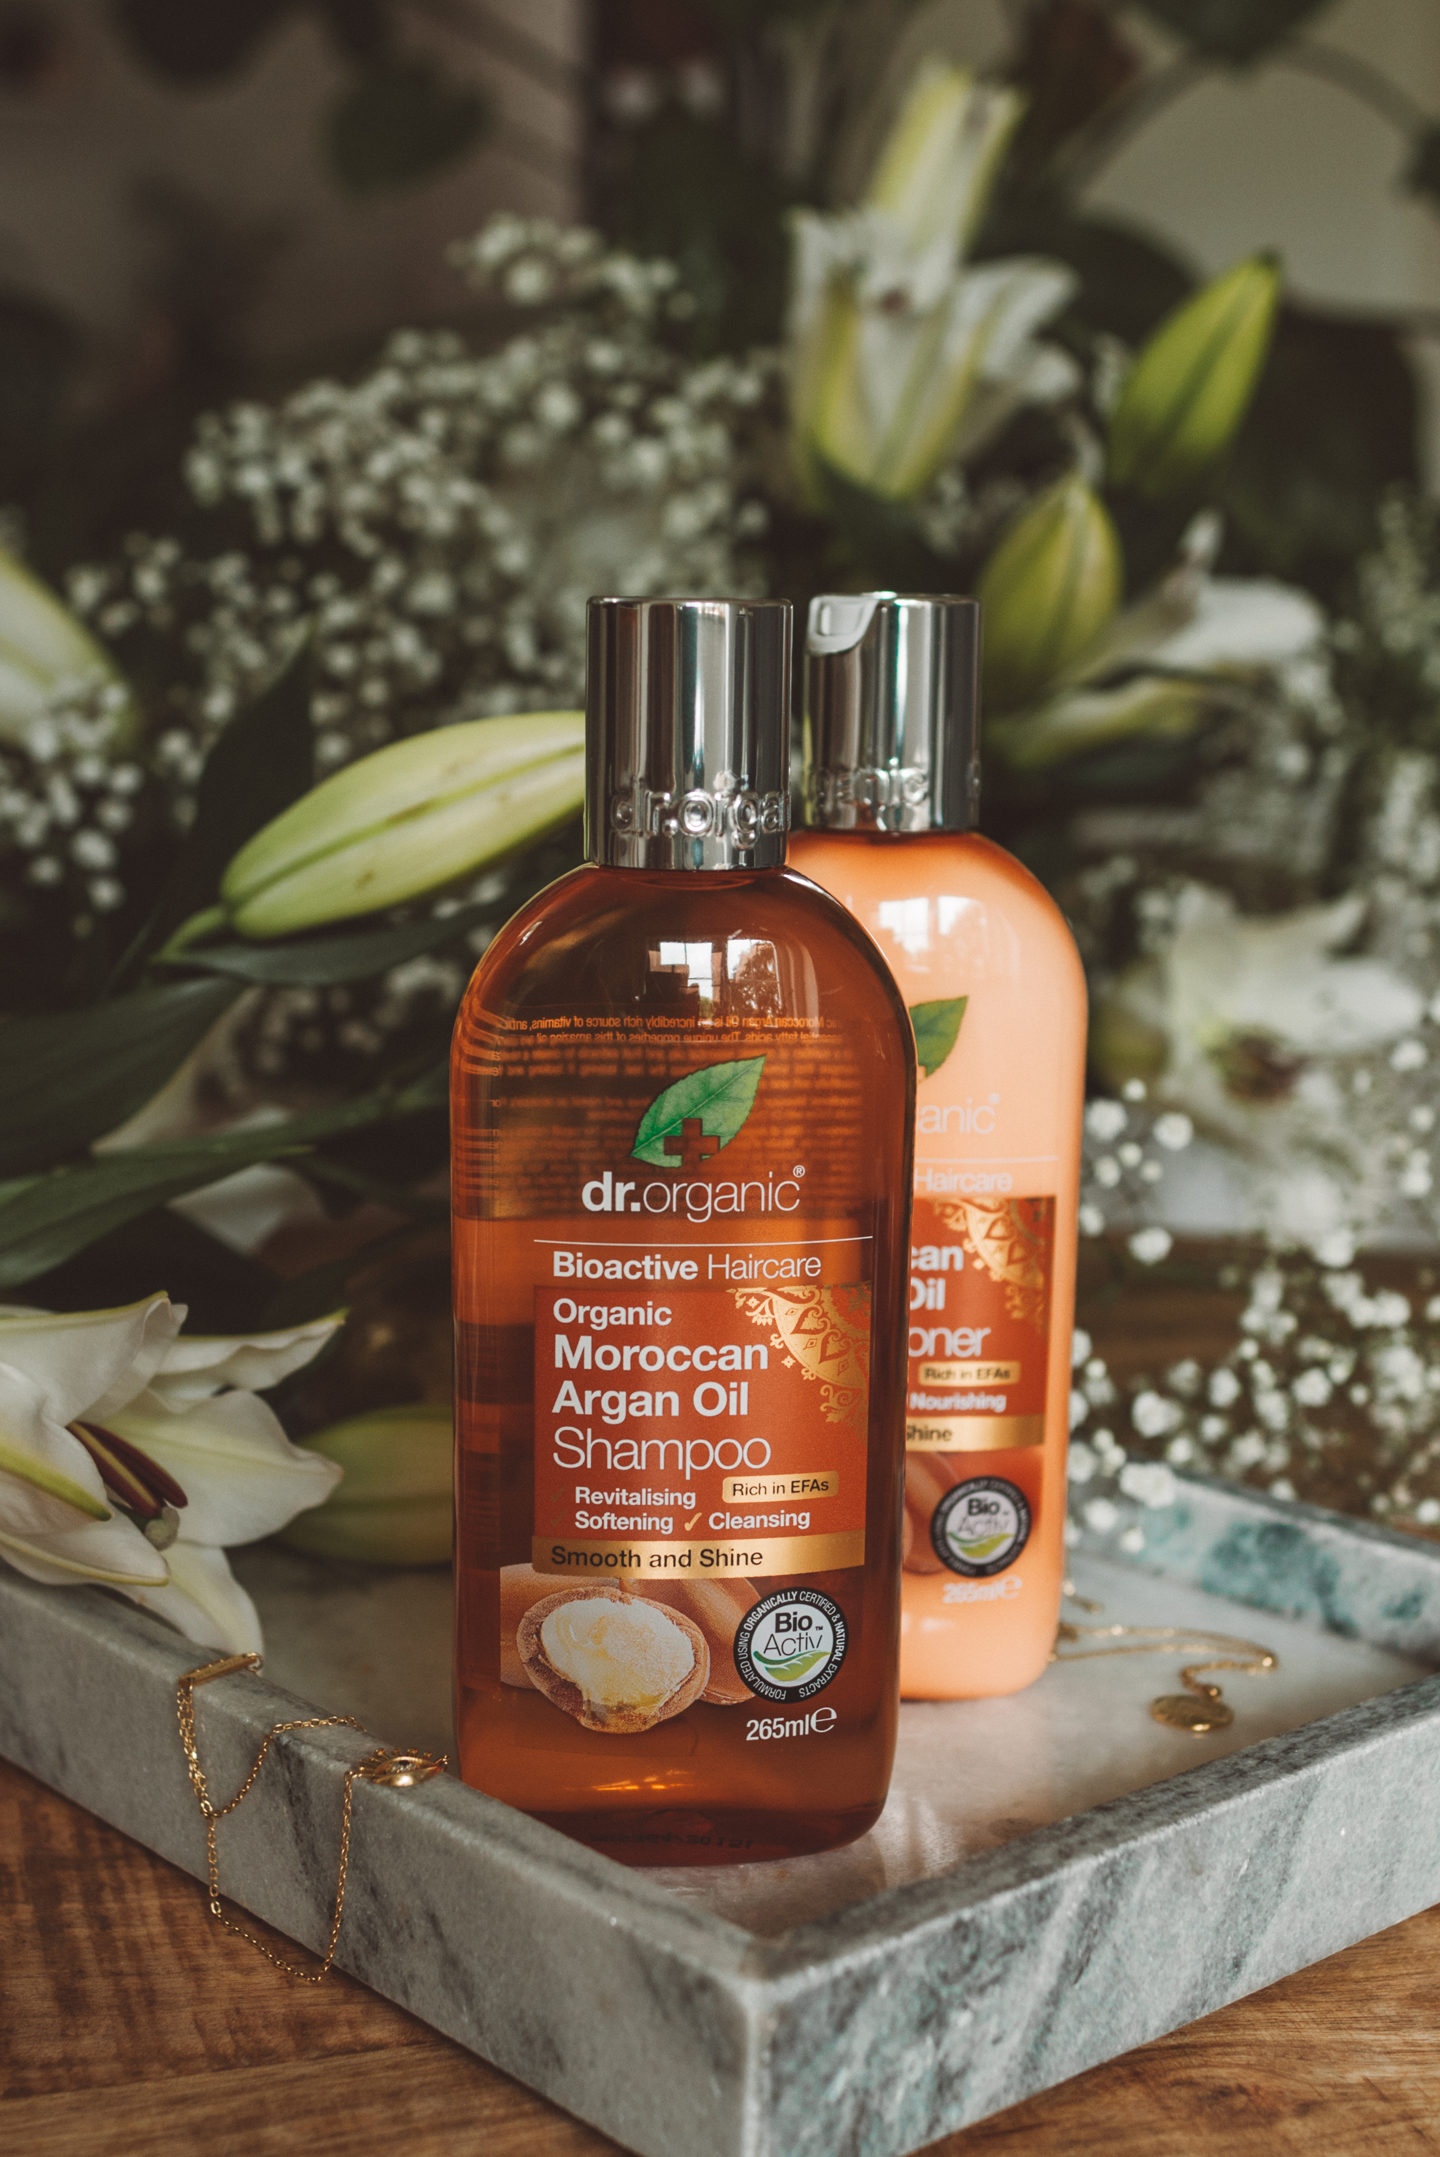 Dr. Organic Moroccan Argan Oil hair care